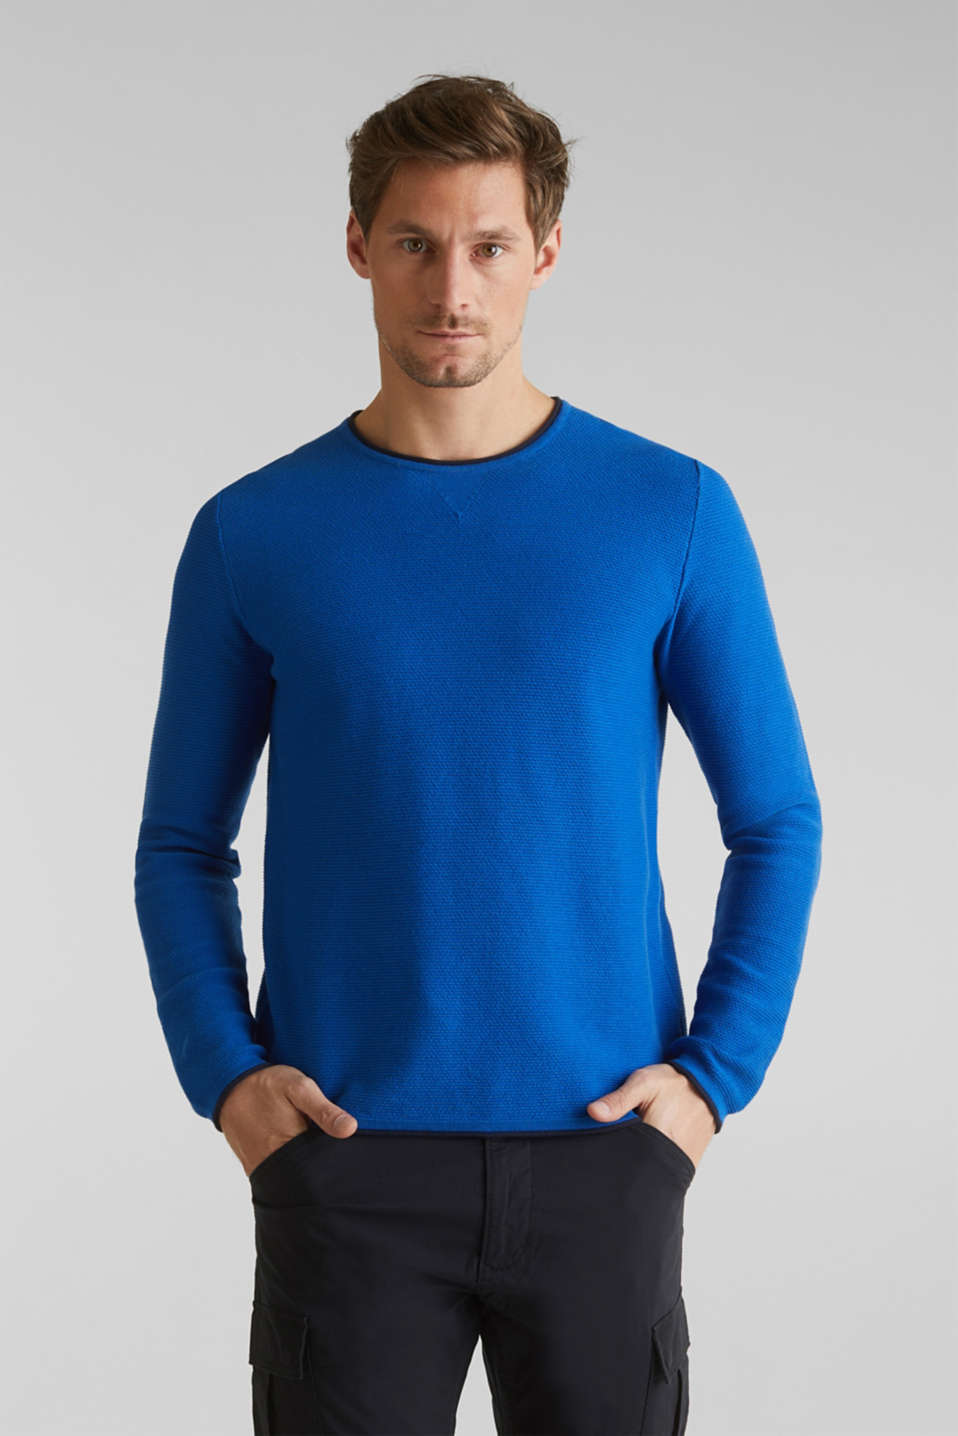 Textured jumper made of 100% cotton, BLUE 5, detail image number 8